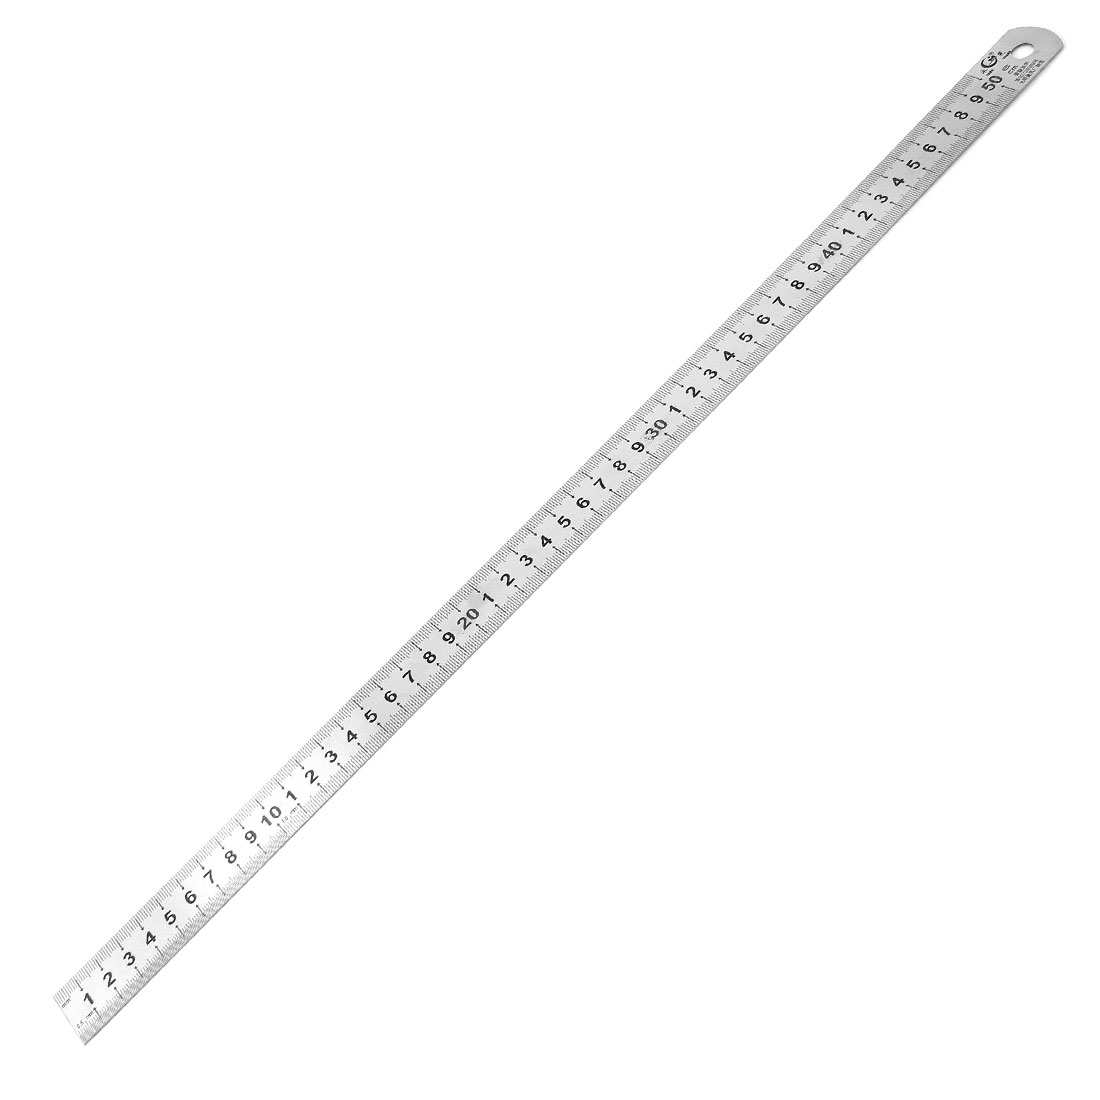 Double Side 50cm Measurement Stainless Steel Ruler for Students